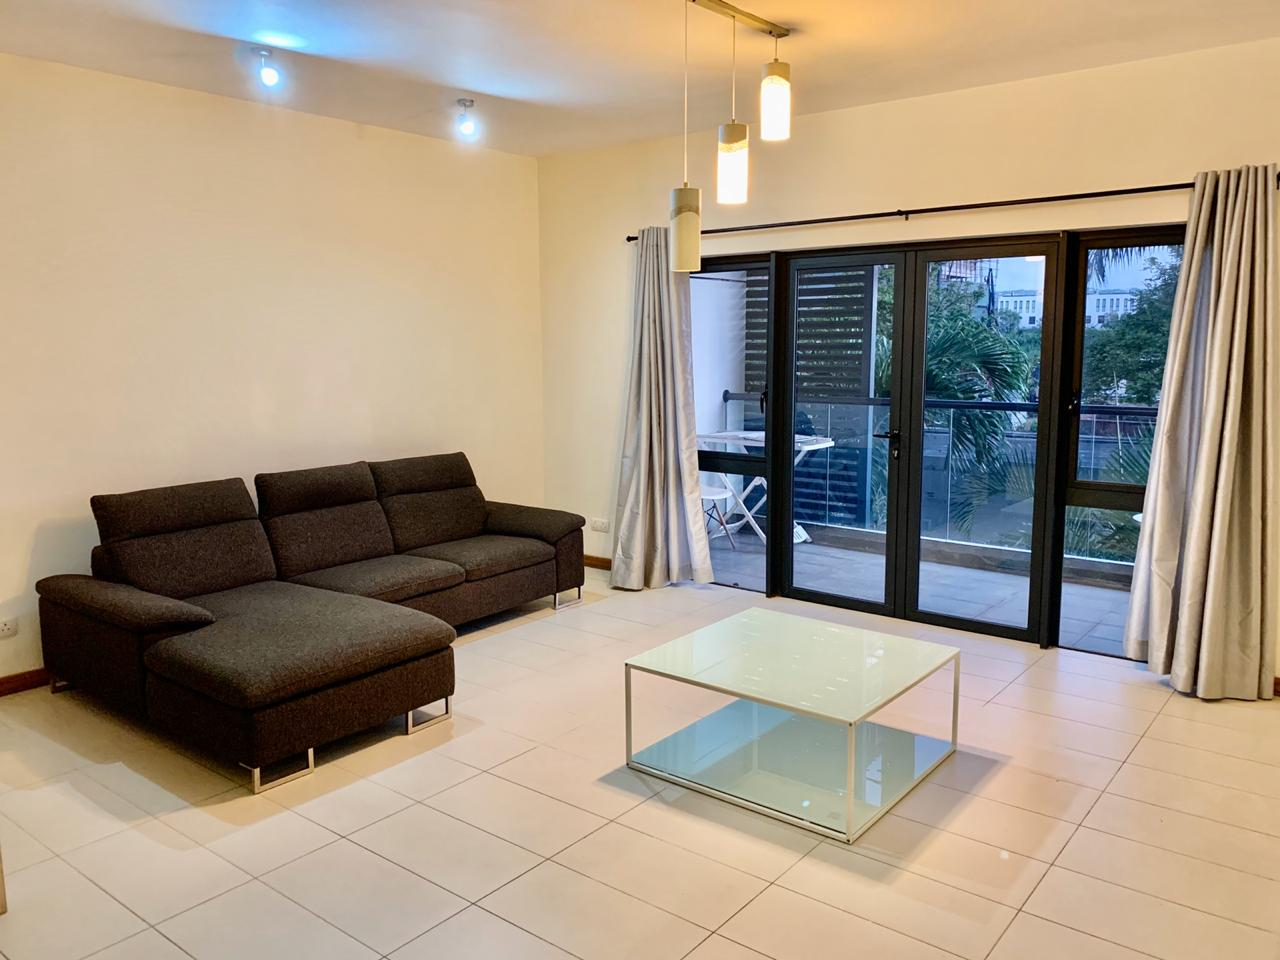 Apartment for Rent in Hillcrest - Phoenix